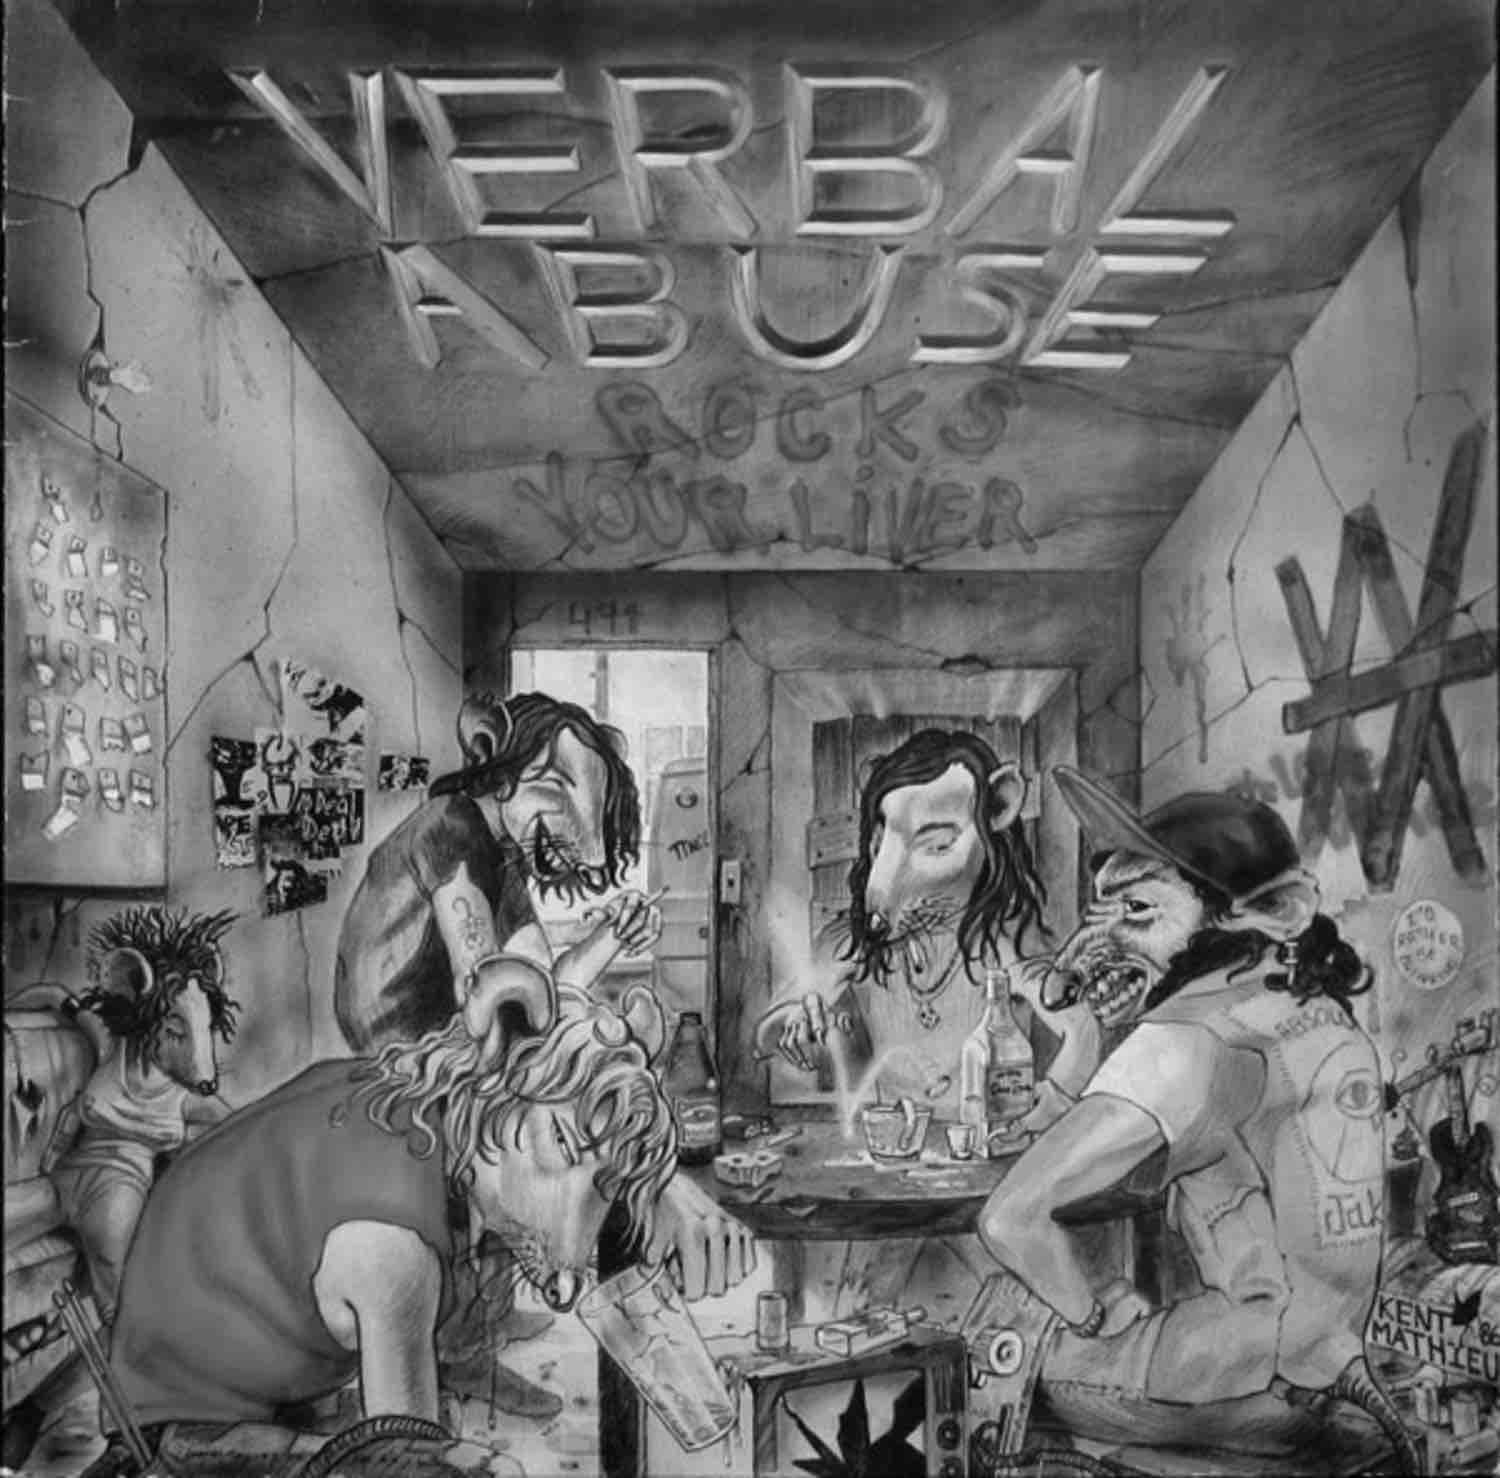 verbal abuse rocks your liver lp